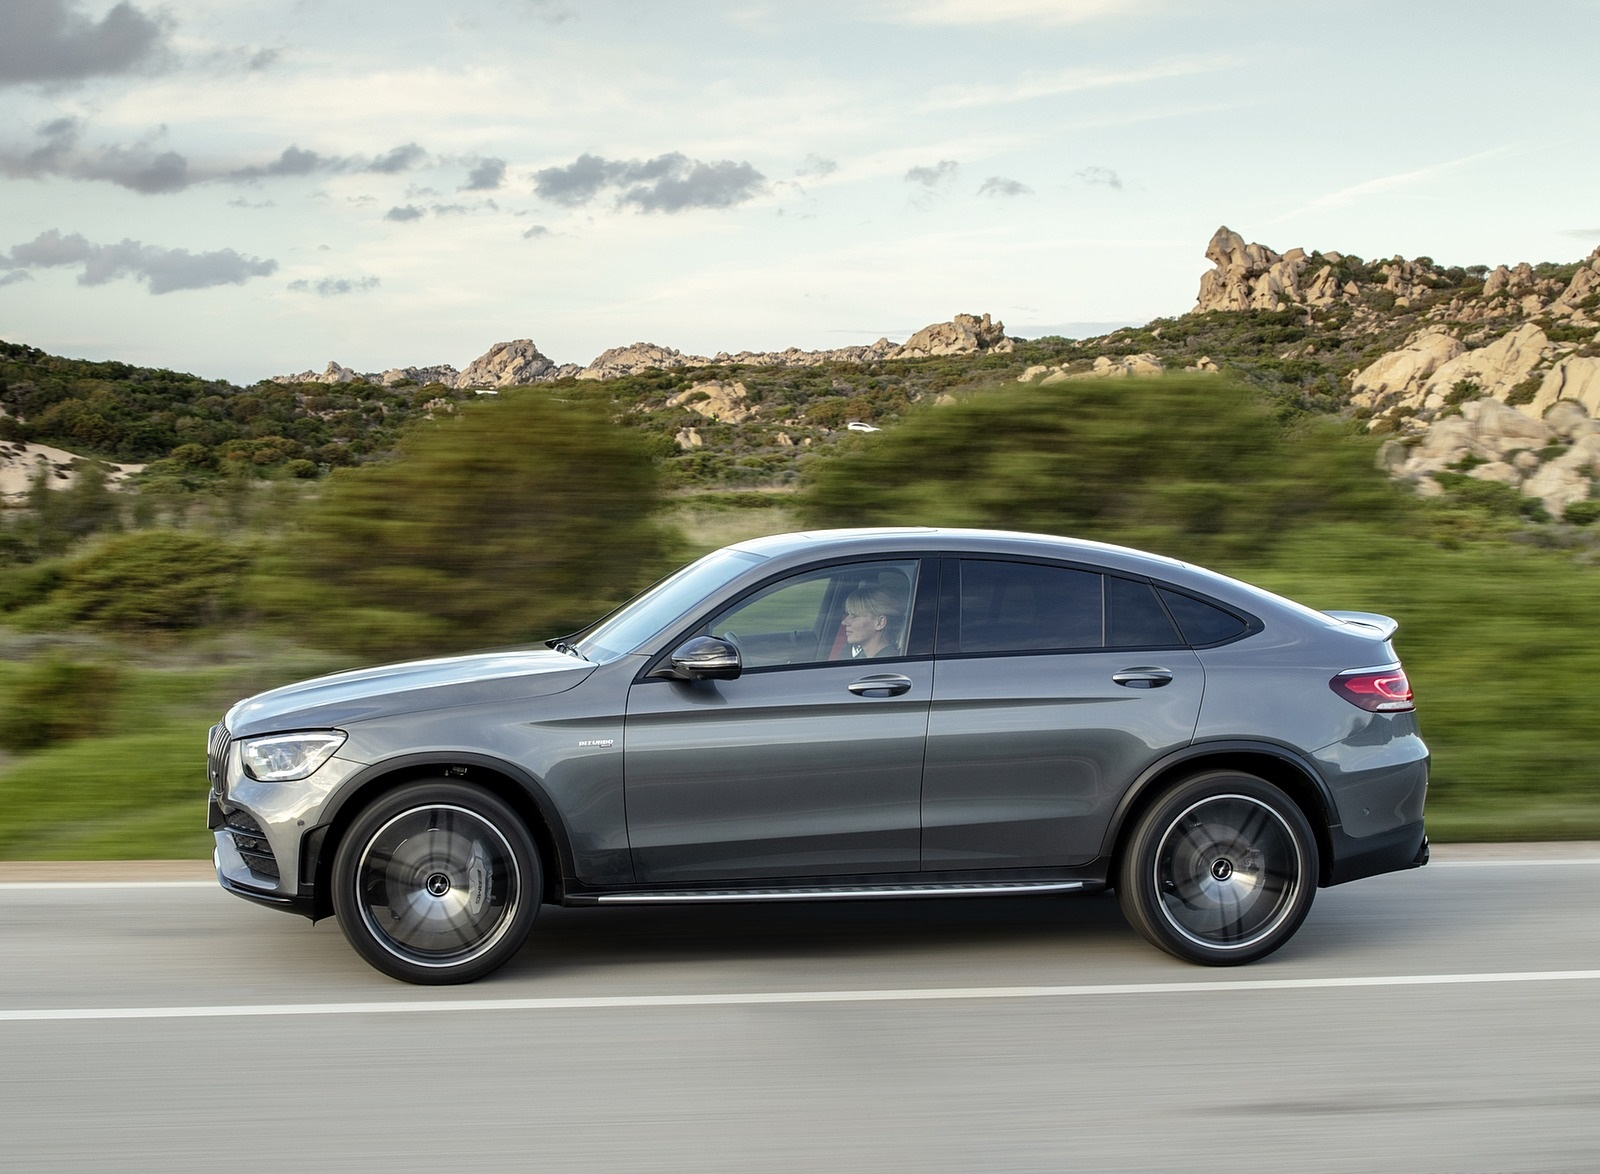 2020 Mercedes-AMG GLC 43 4MATIC Coupe Side Wallpapers (10)